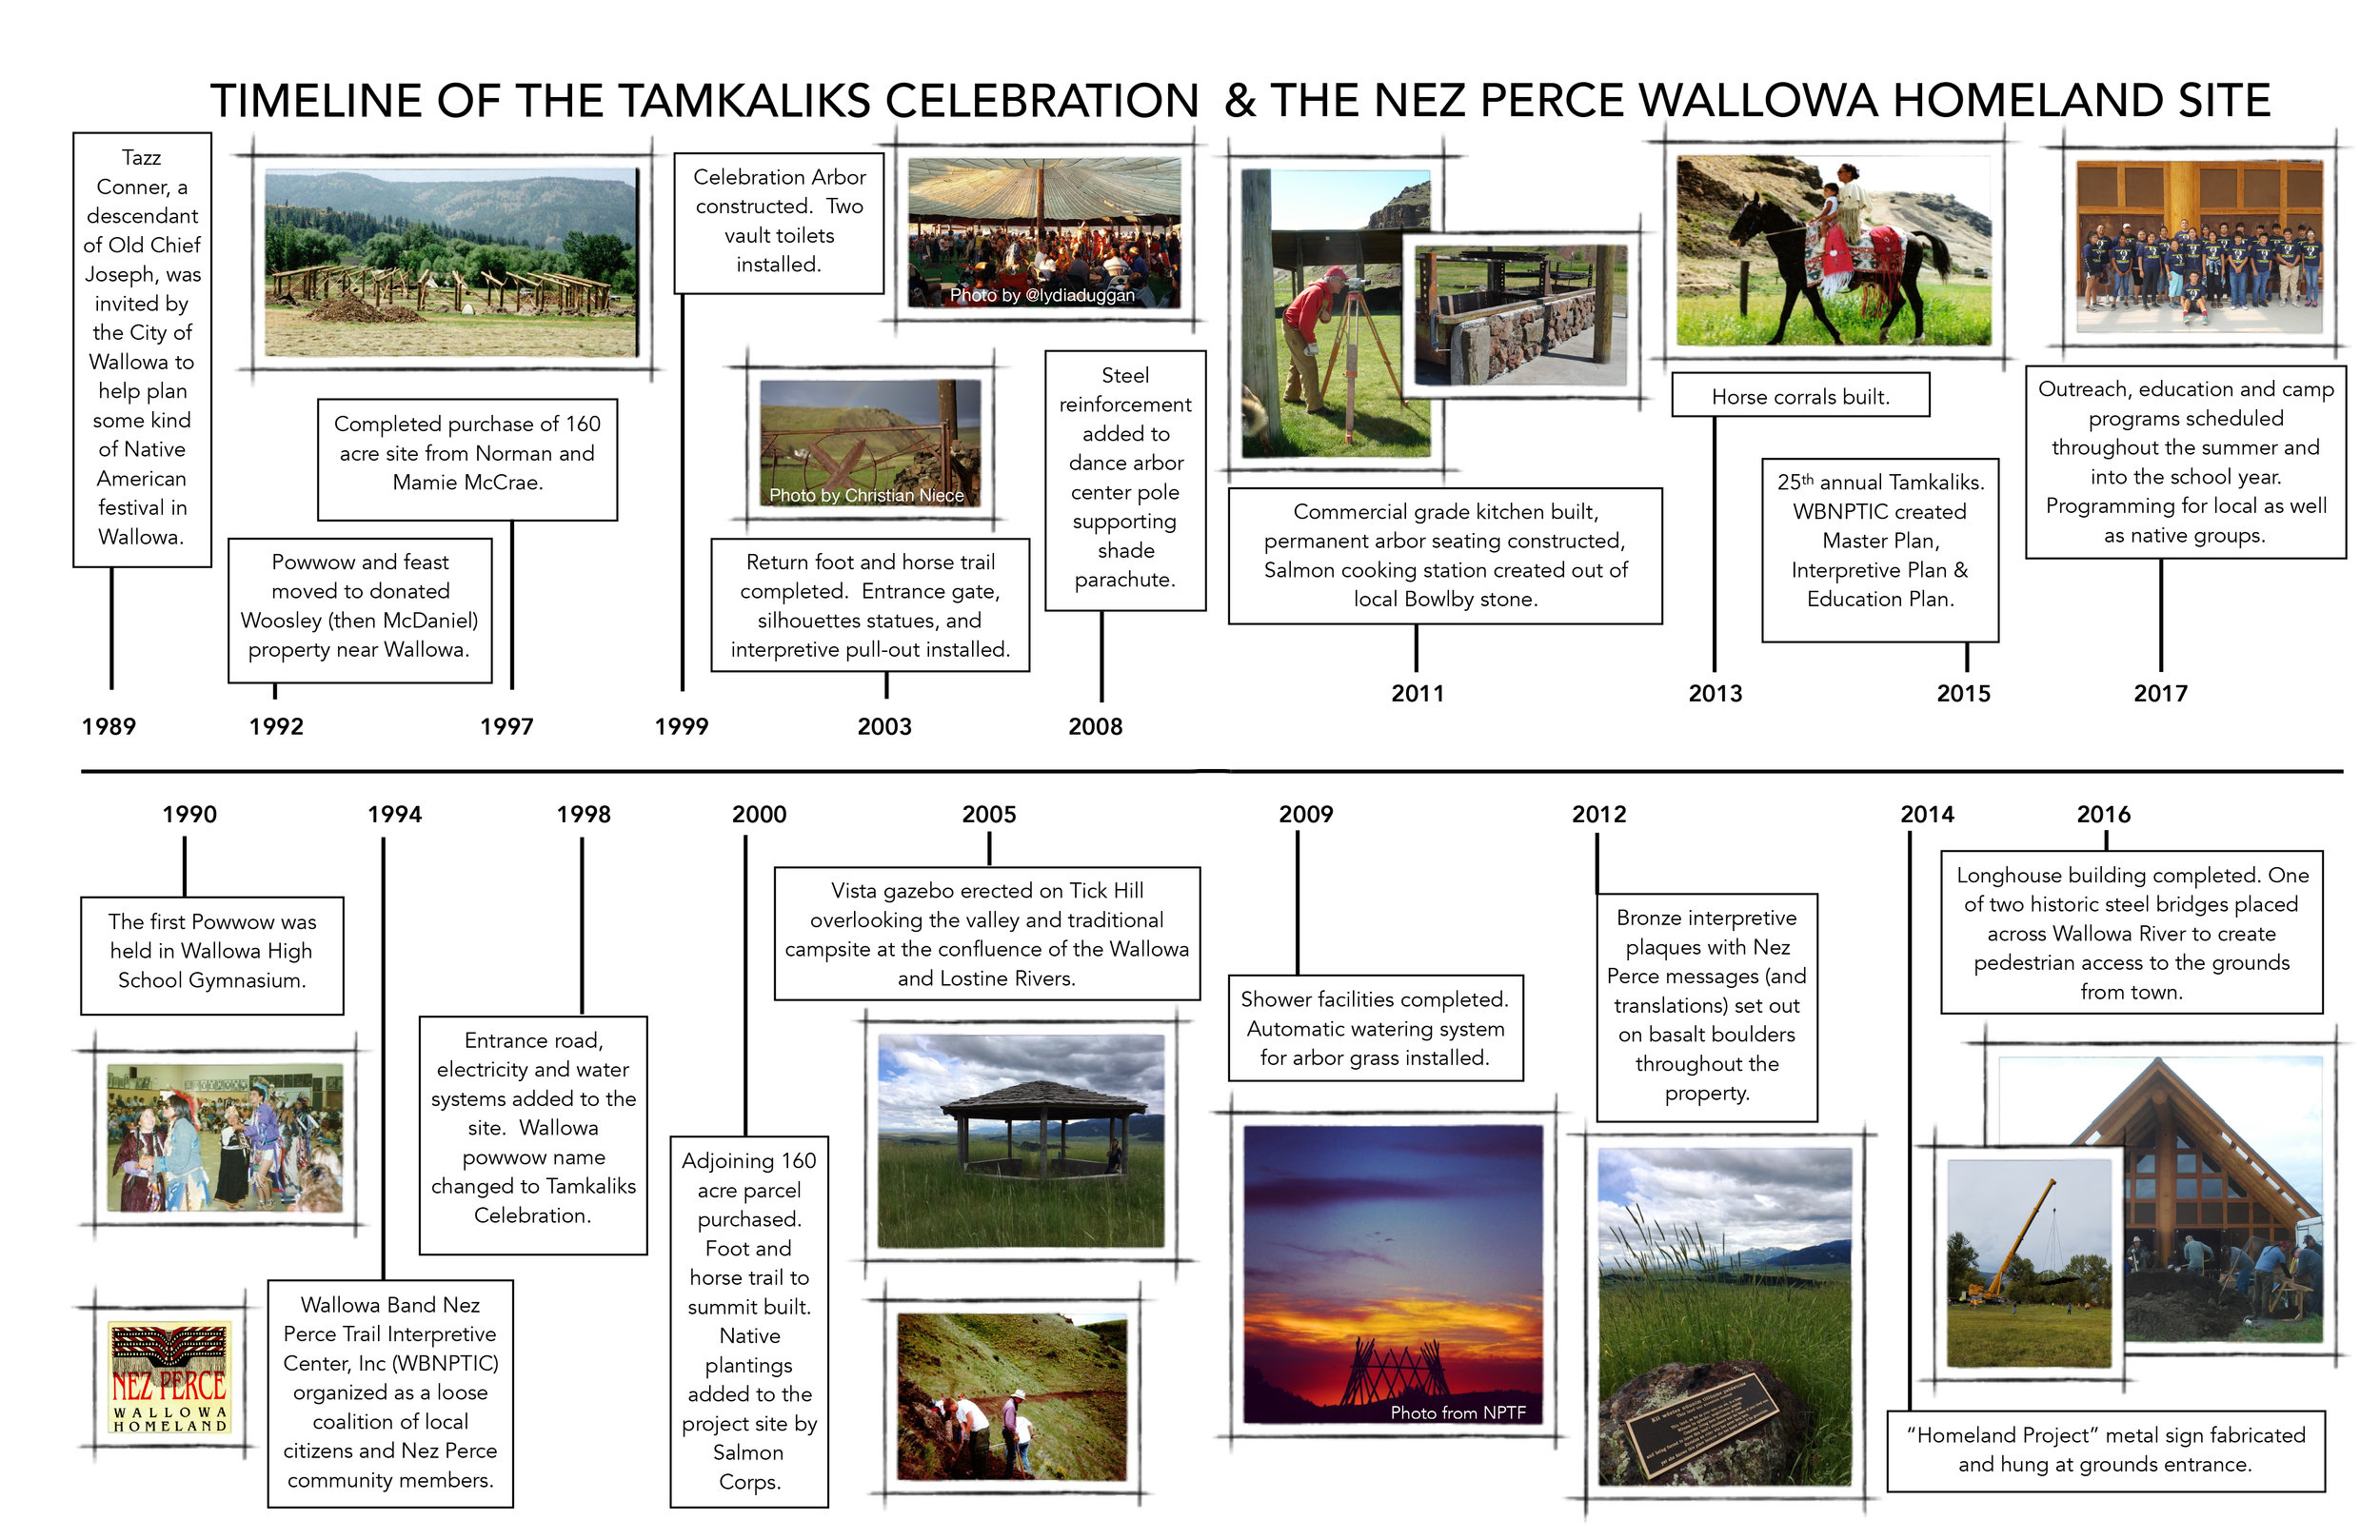 Timeline of the Tamkaliks Celebration and the Nez Perce Wallowa Homeland Site, from 1989 through 2017.